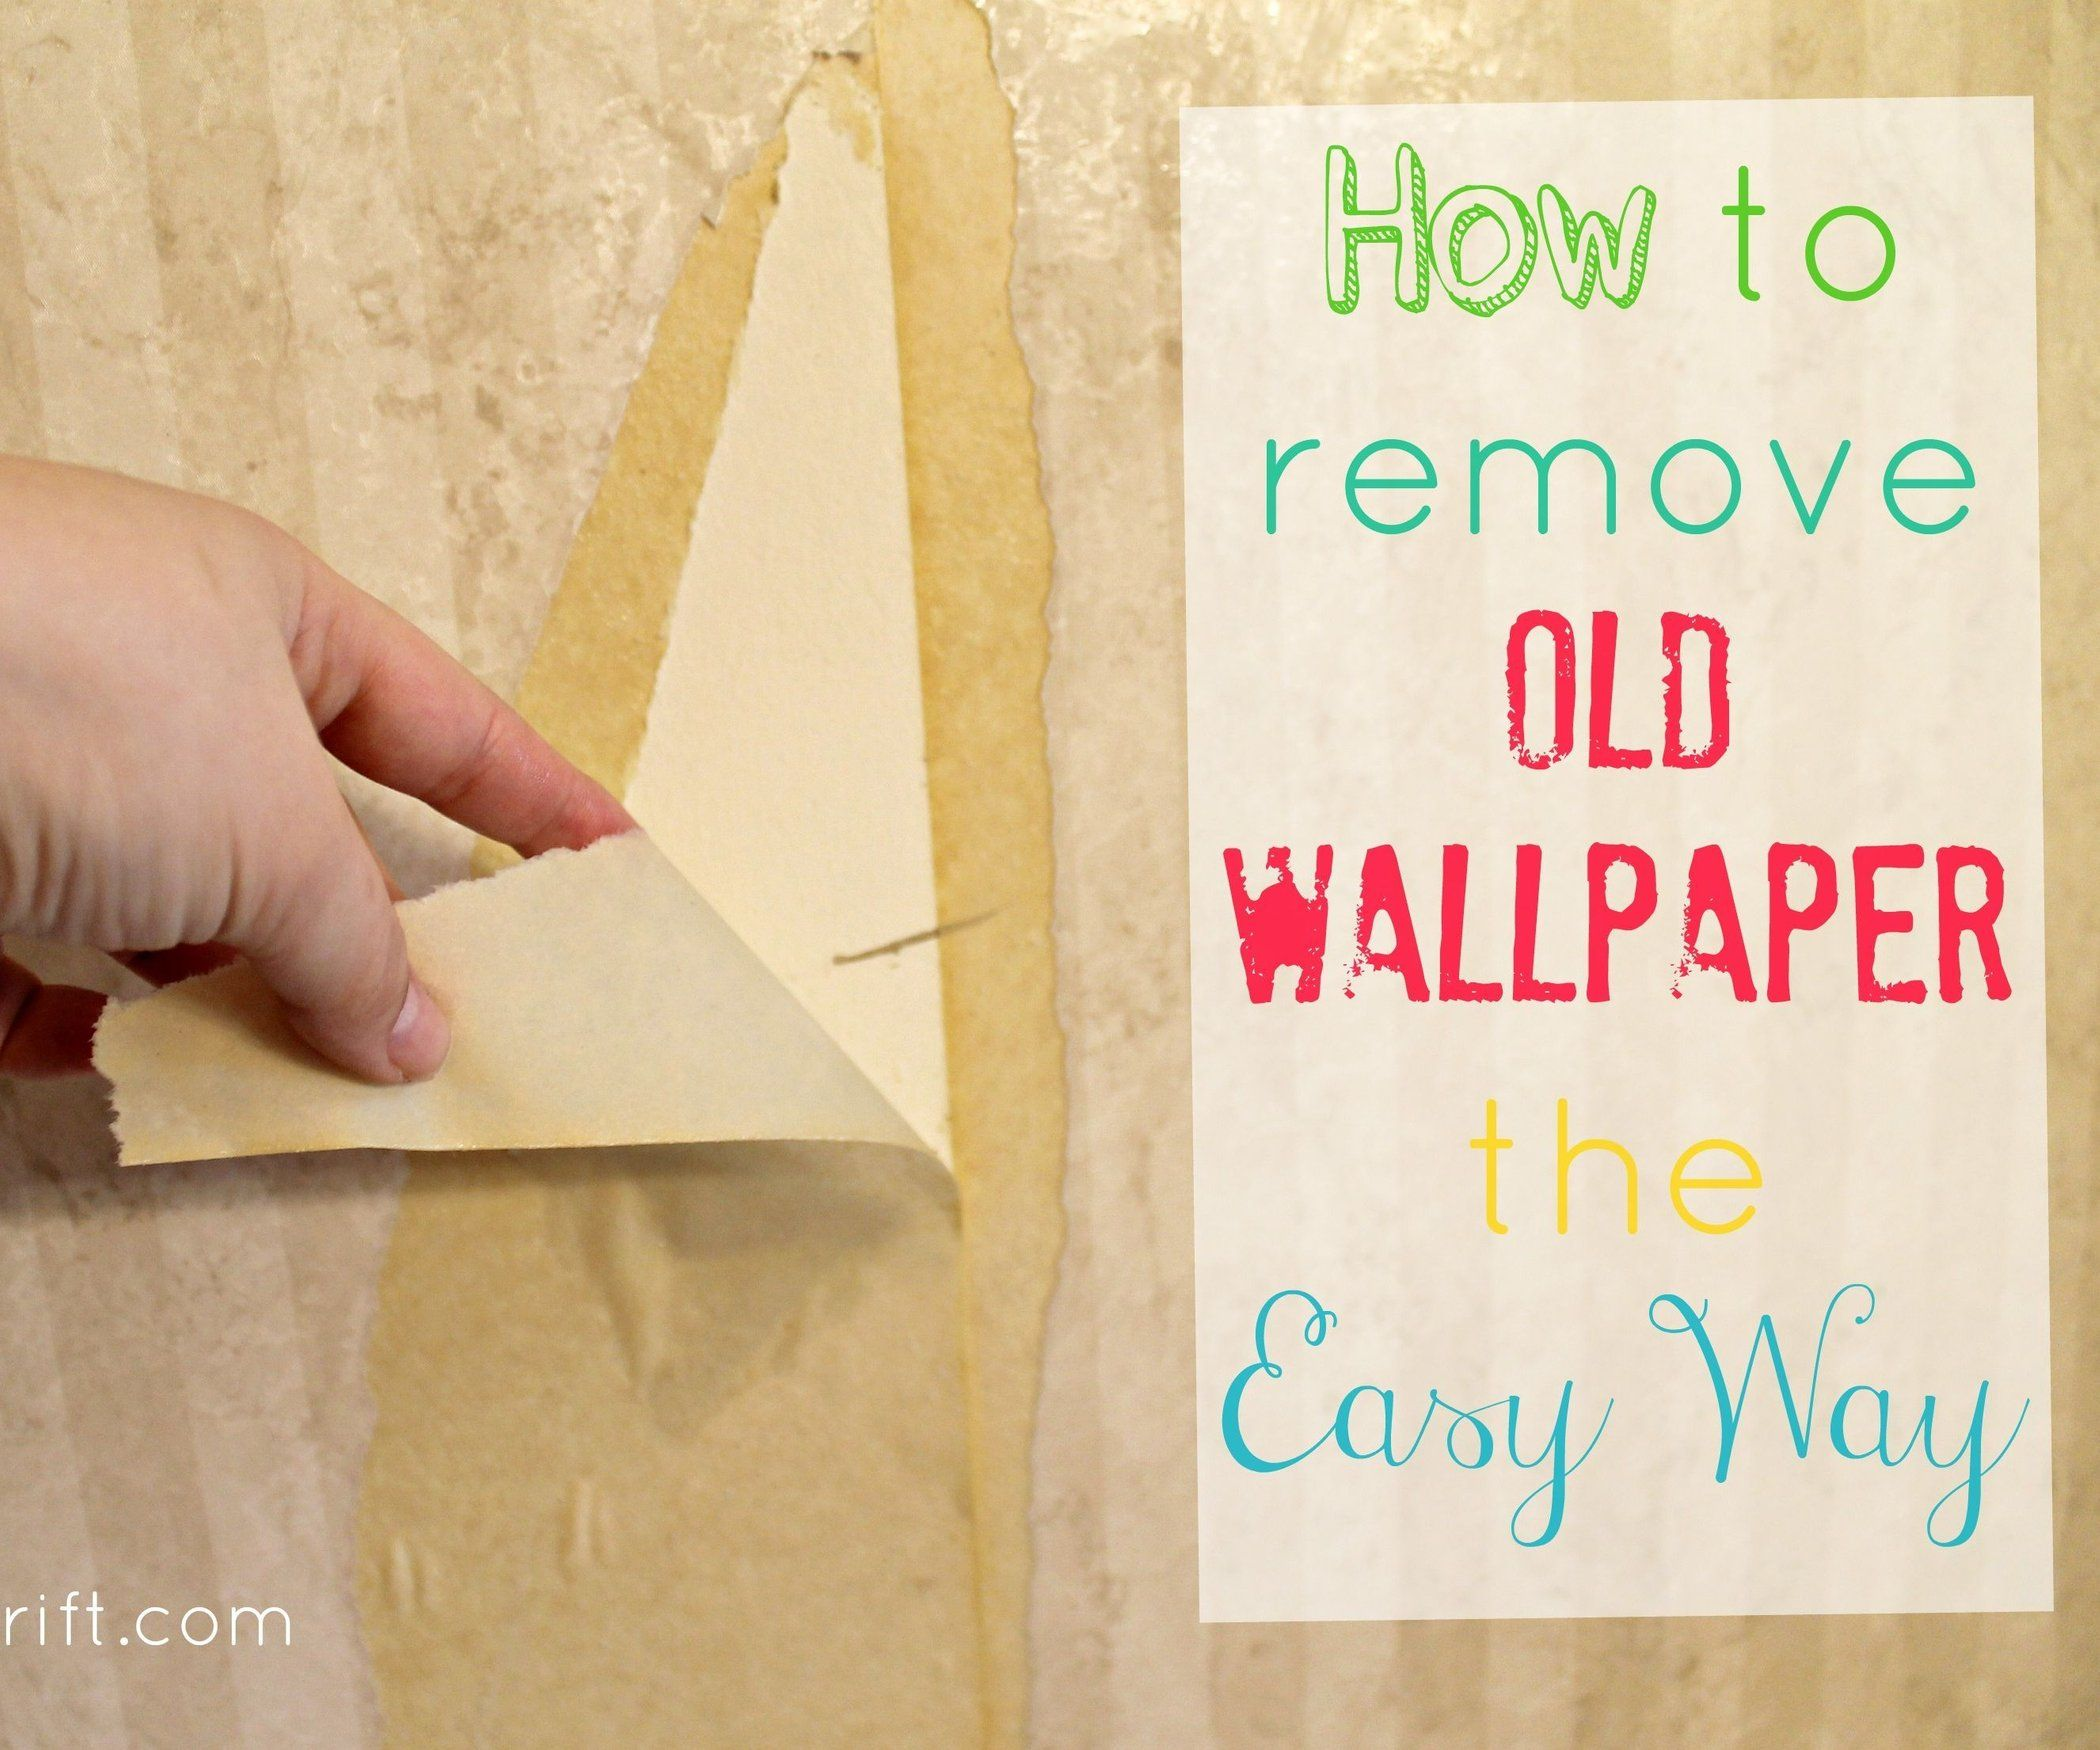 Accent A Wall Using A Plastic Bag: How To Remove Wallpaper The Easy Way